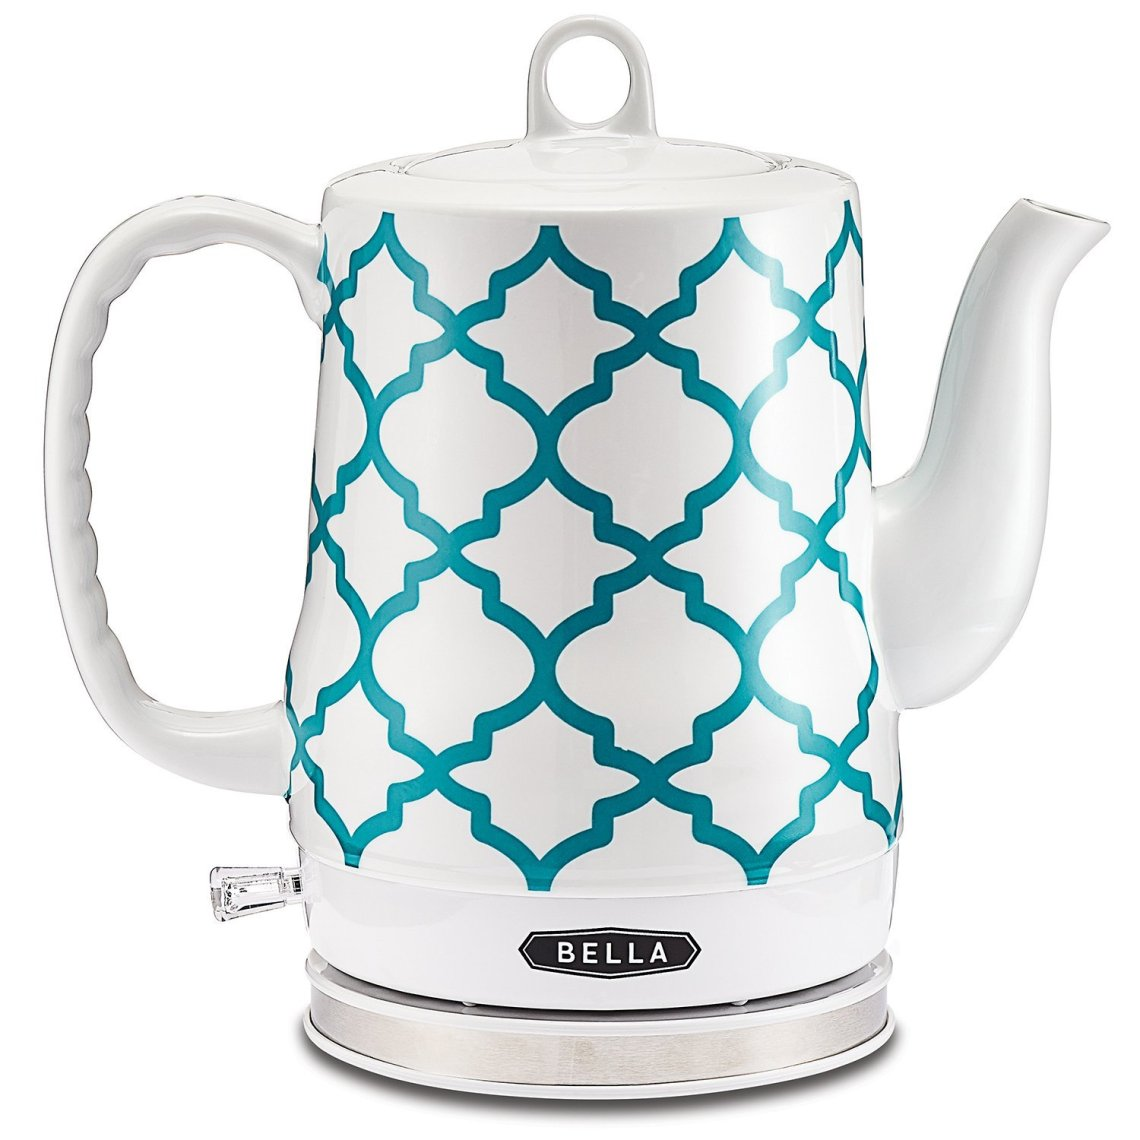 bella-electric-ceramic-kettle-_holiday-gift